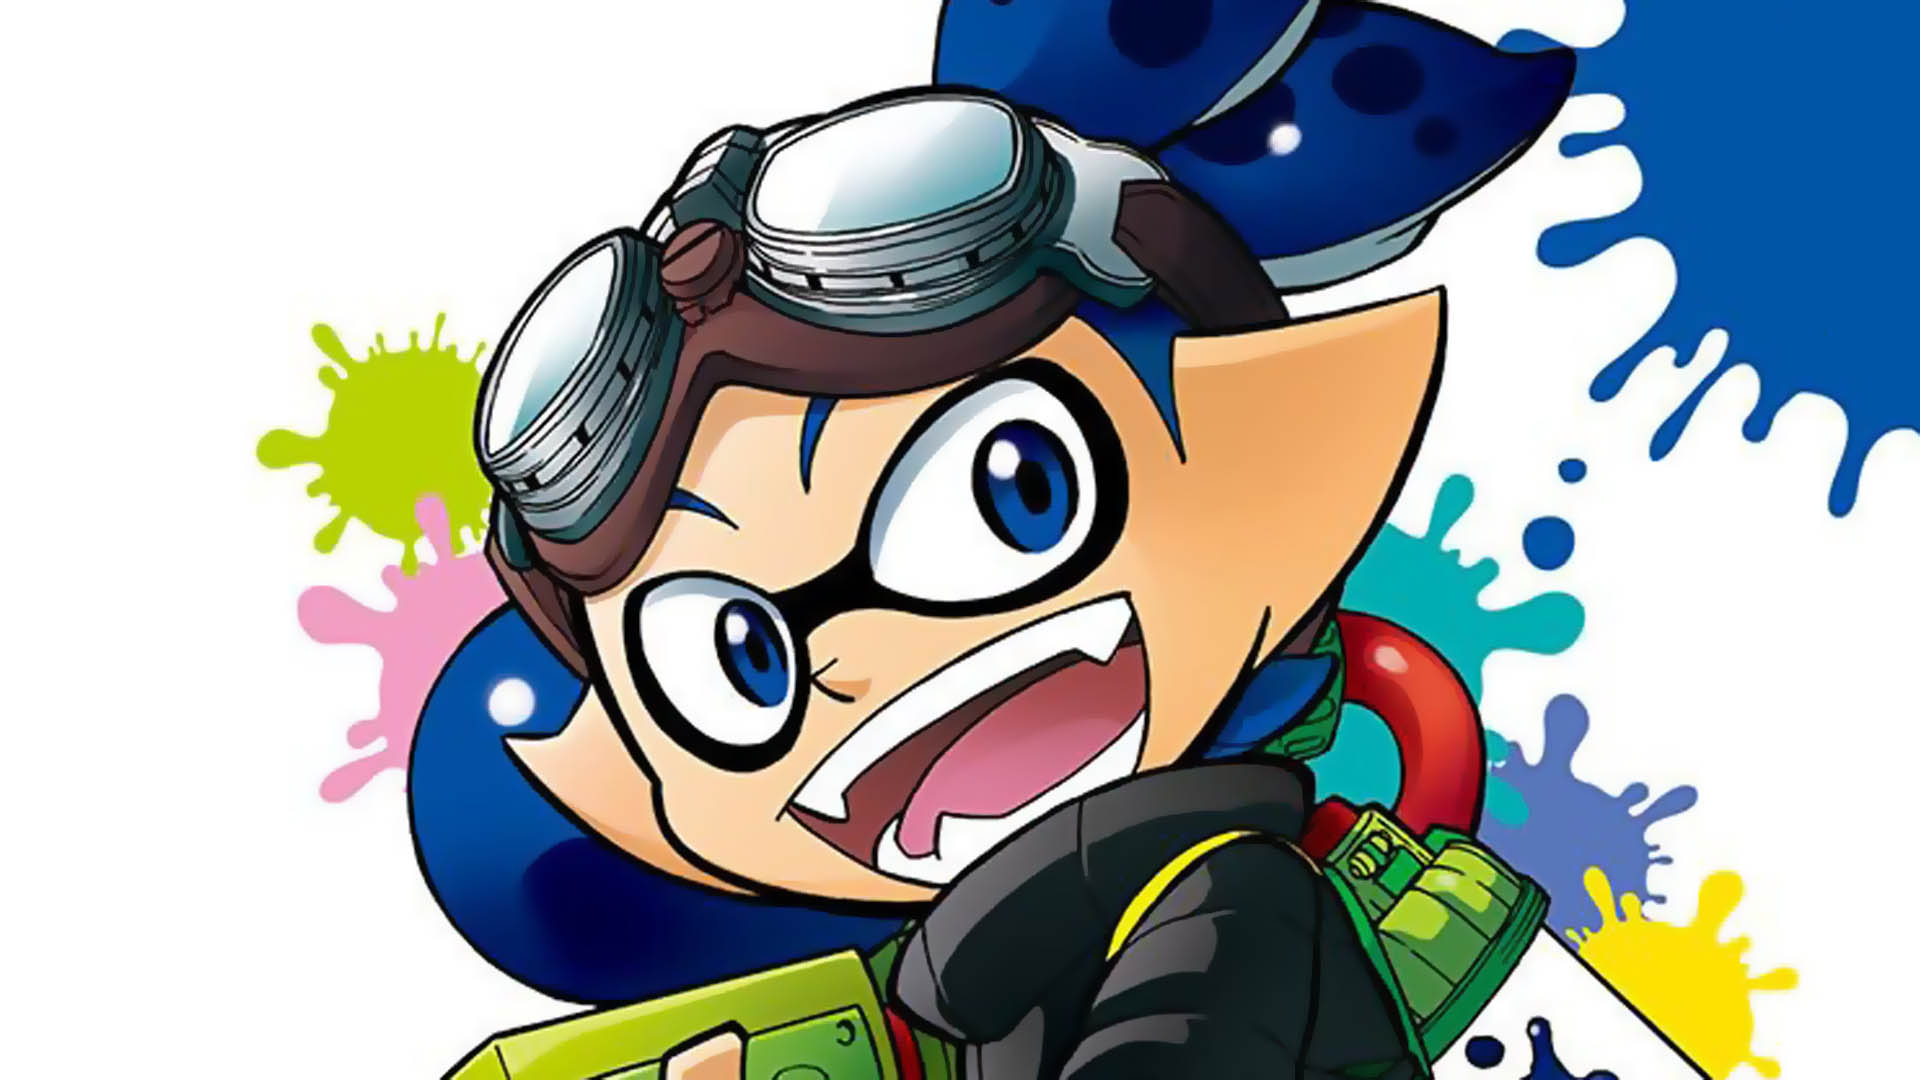 Splatoon is getting an anime adaptation screenshot